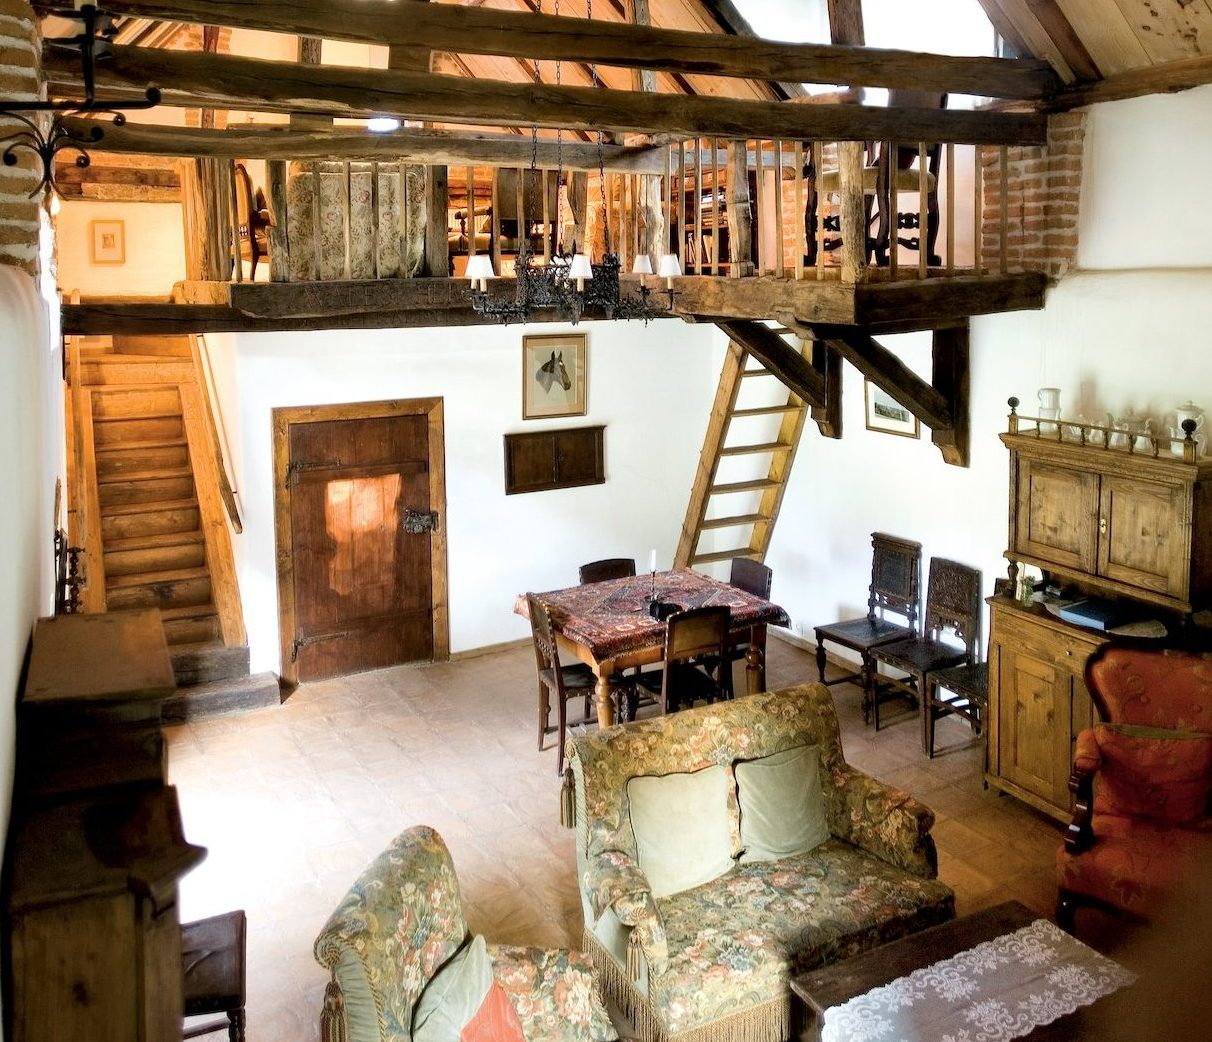 HRH Prince Charles' Guesthouse, Interieur